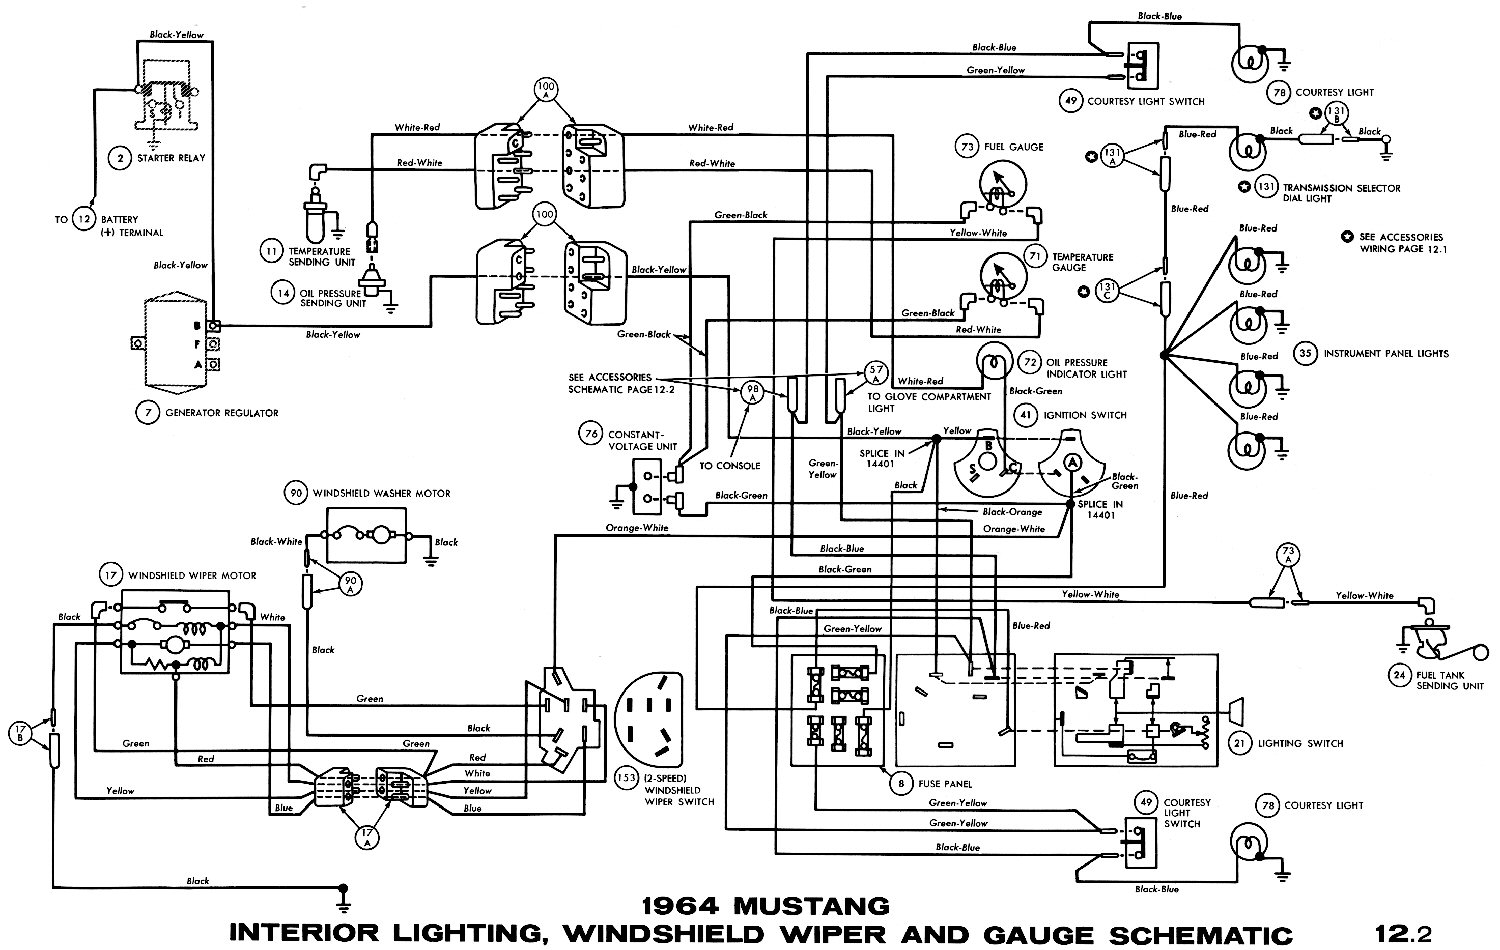 1964k 1964 mustang wiring diagrams average joe restoration 1966 mustang wiring diagrams at creativeand.co